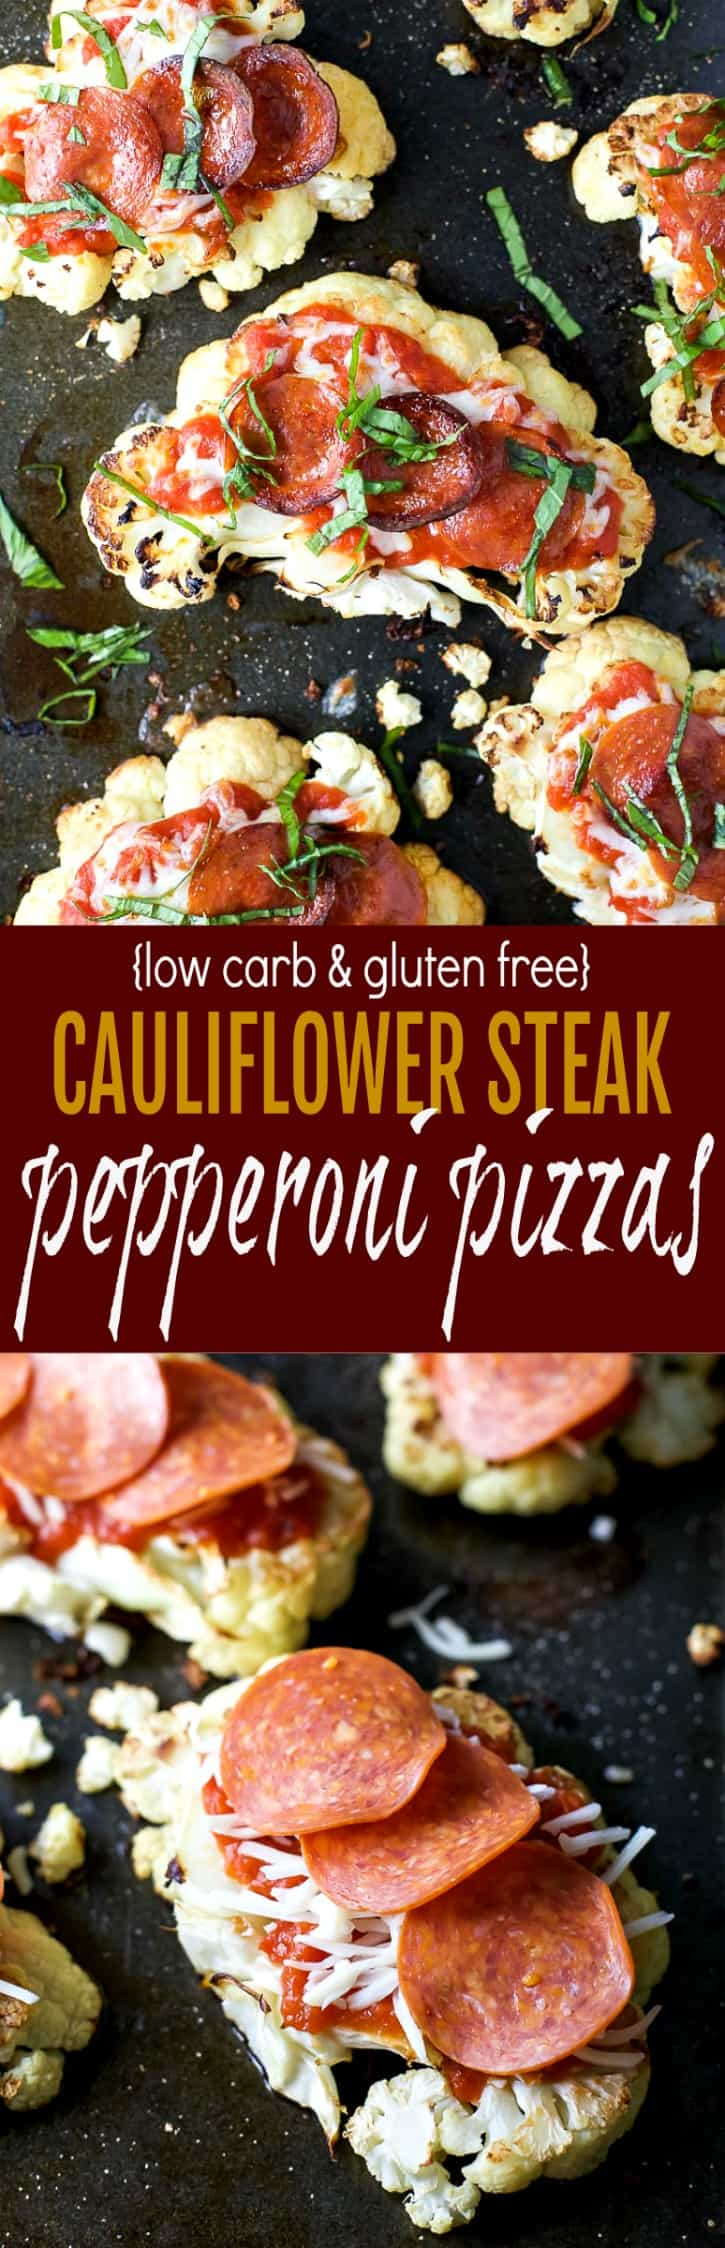 30 Minute Low Carb Cauliflower Steak Pepperoni Pizzas using only 6 ingredients. Pizza night just got a healthy upgrade, these Cauliflower Pizzas are 116 calories per serving and downright delicious!